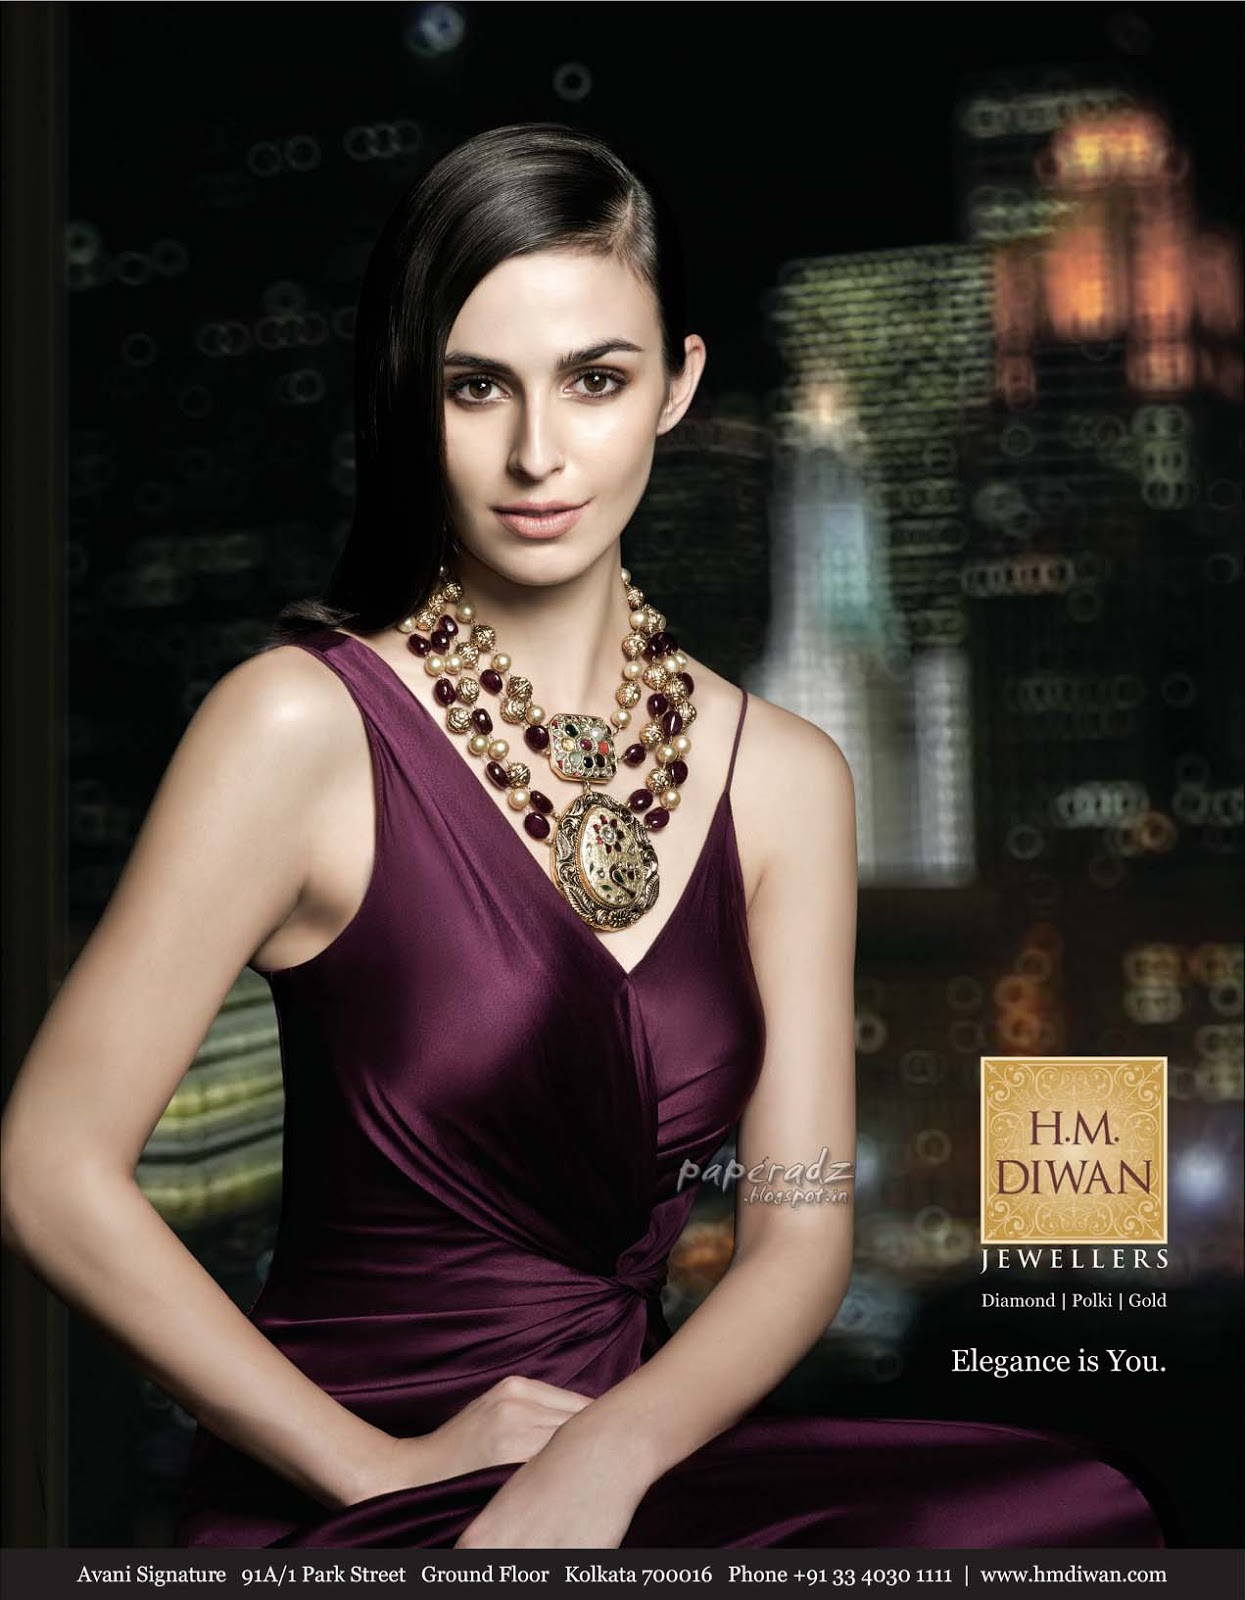 hm diwan jewellers kolkata advertisements news paper ForHm Diwan Jewellers